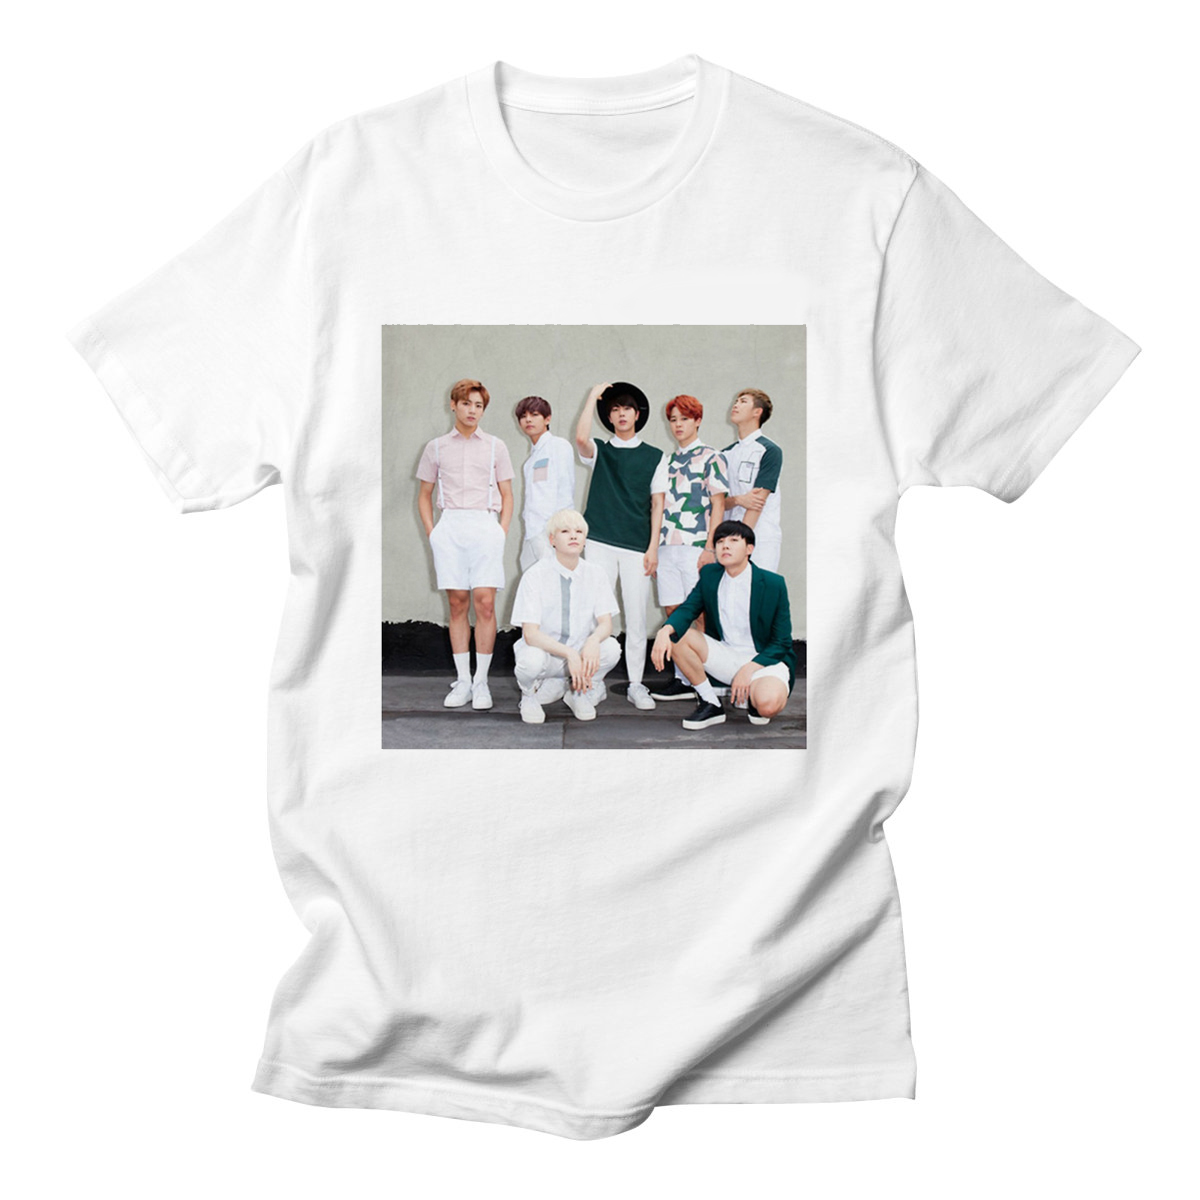 Summer Cotton Kpop   T     Shirt   Bangtan Boys Rap Monster   T  -  Shirts   Women Short Sleeve Funny Rock K-pop Clothes Short Sleeve Women